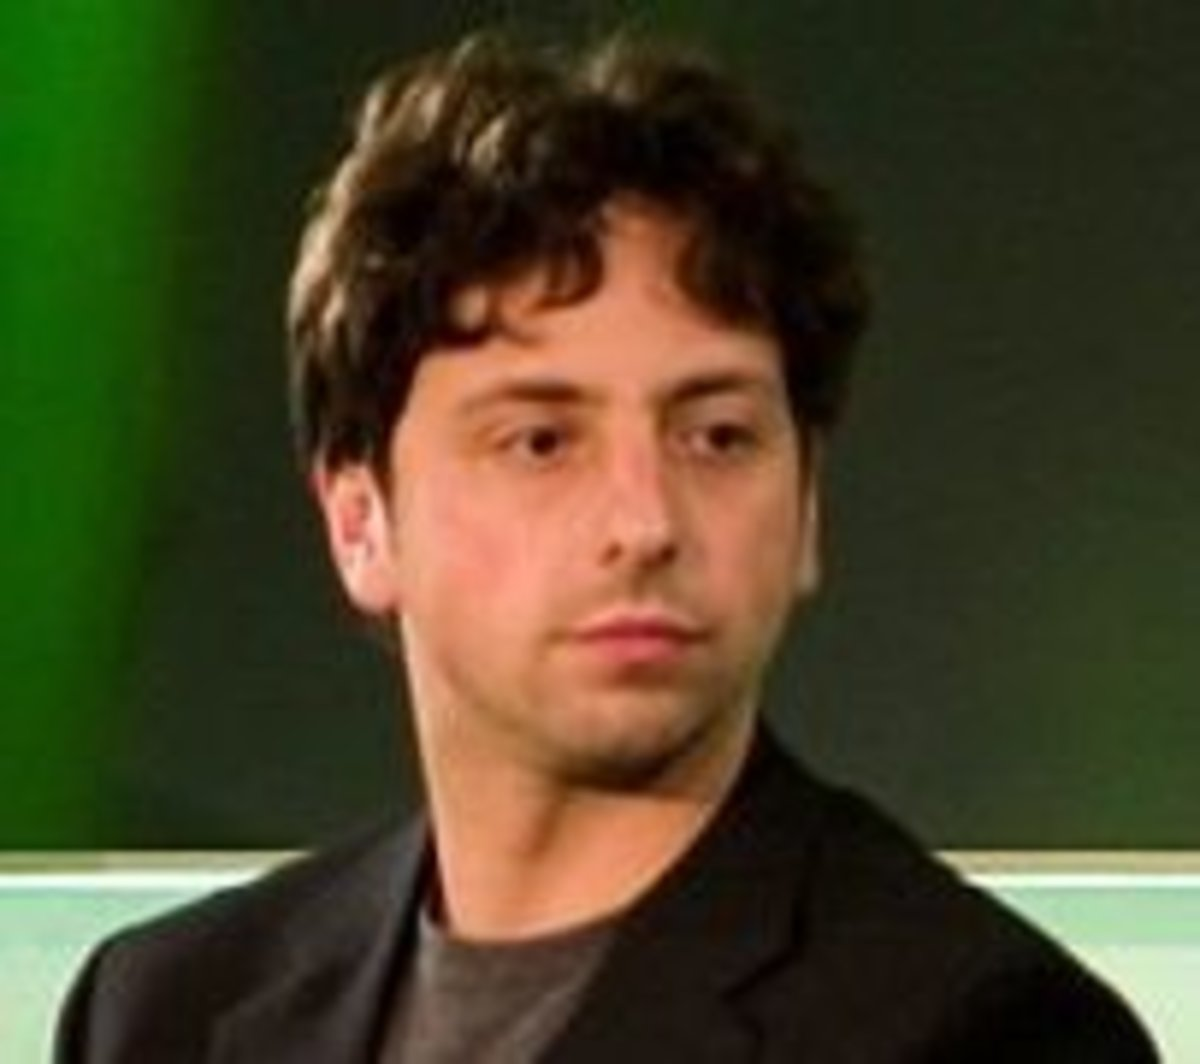 Sergey Brin, co-founder of Google.com